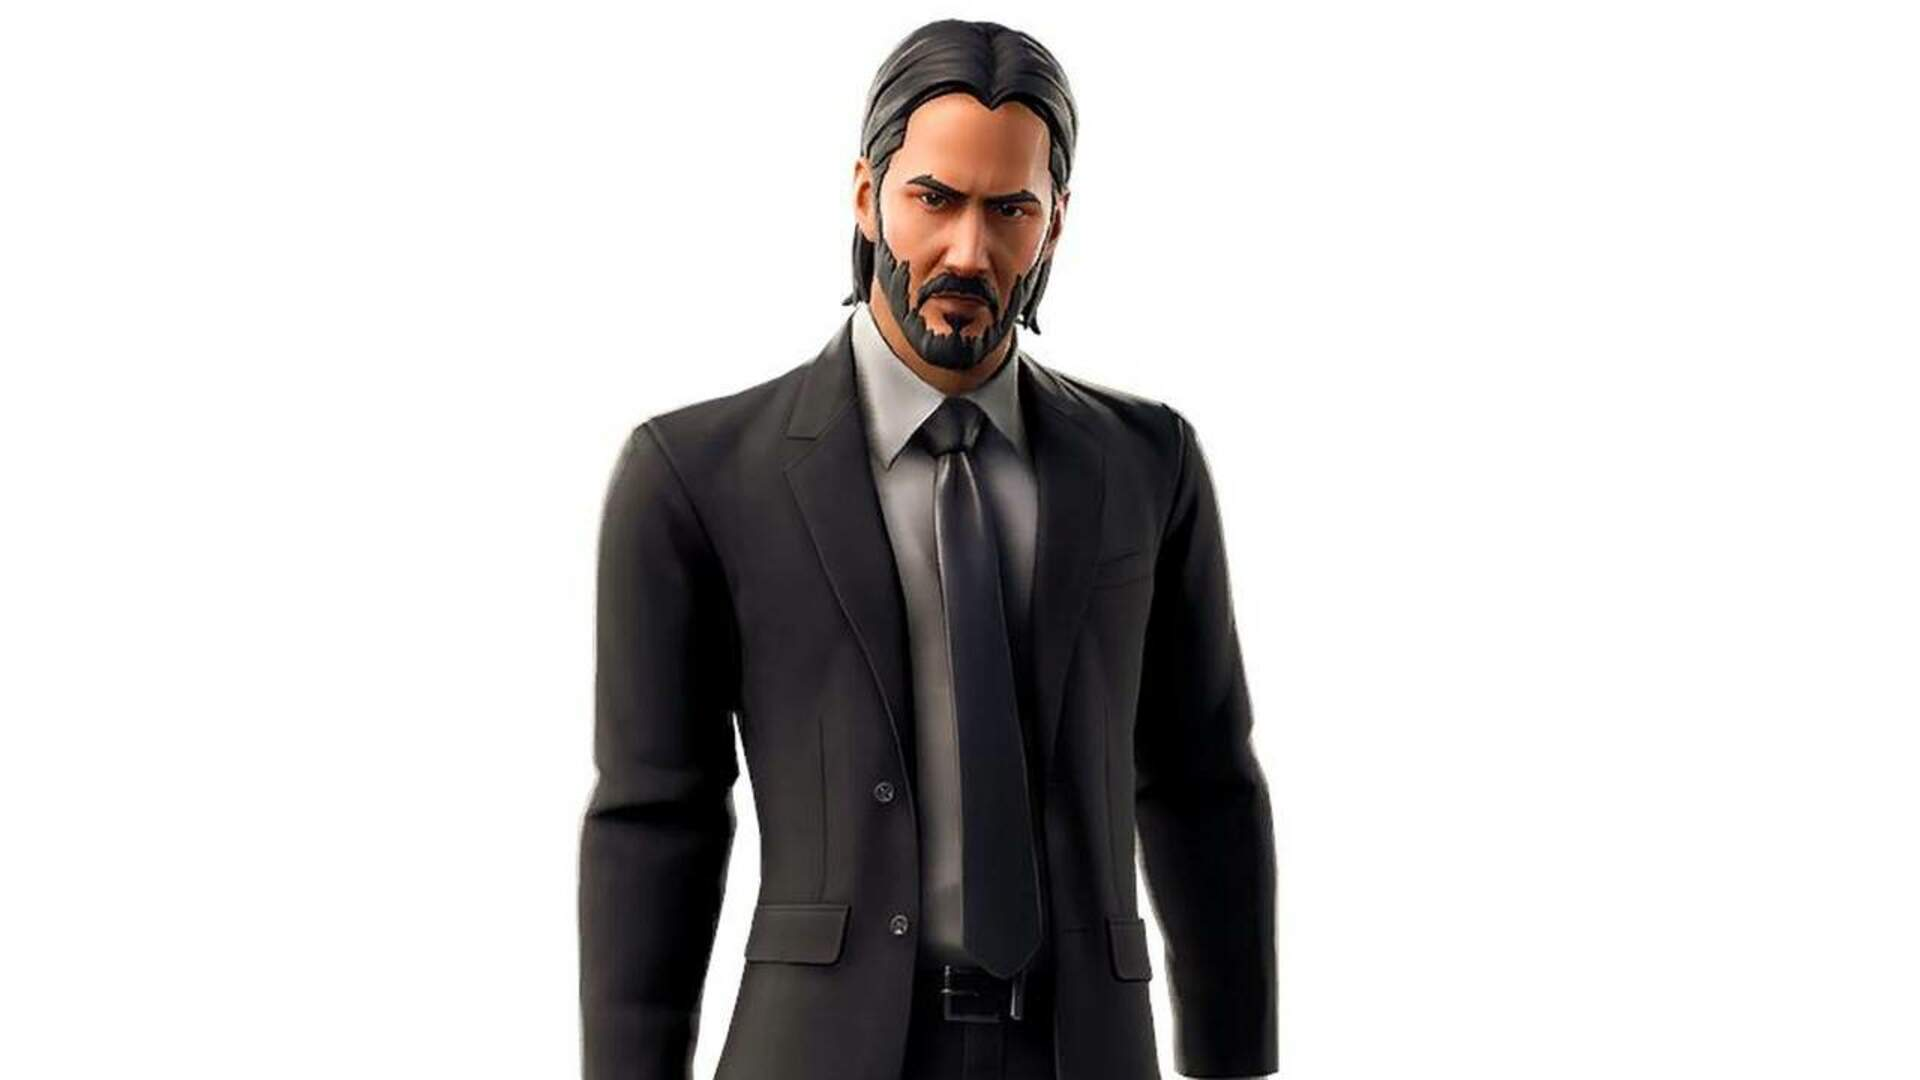 John Wick Fortnite Event - Wick's Bounty Challenges, John Wick Skin and Back Bling